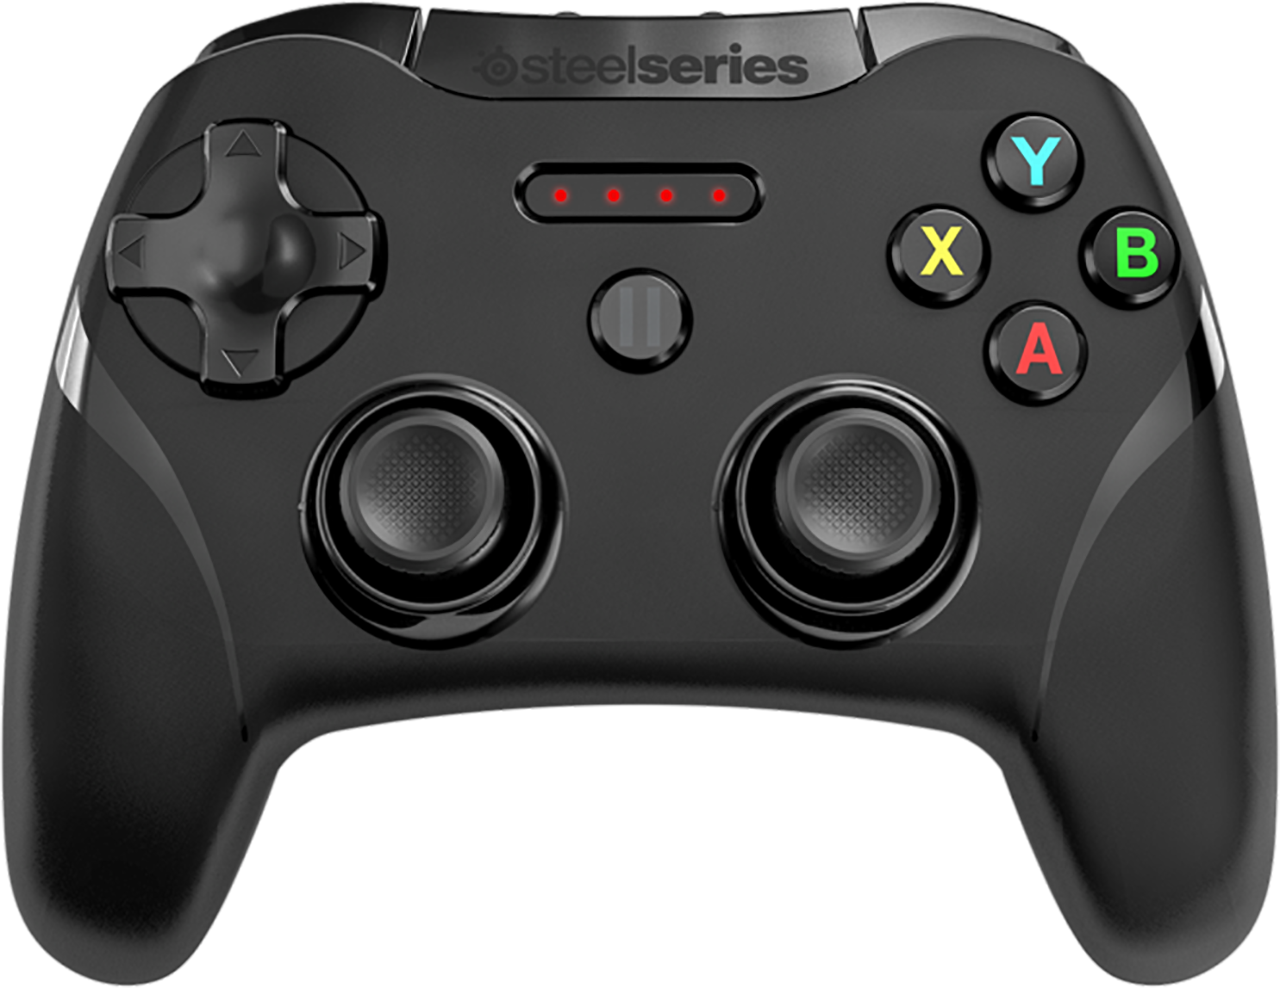 SteelSeries Stratus XL iPhone and iPad Controller Overview Image